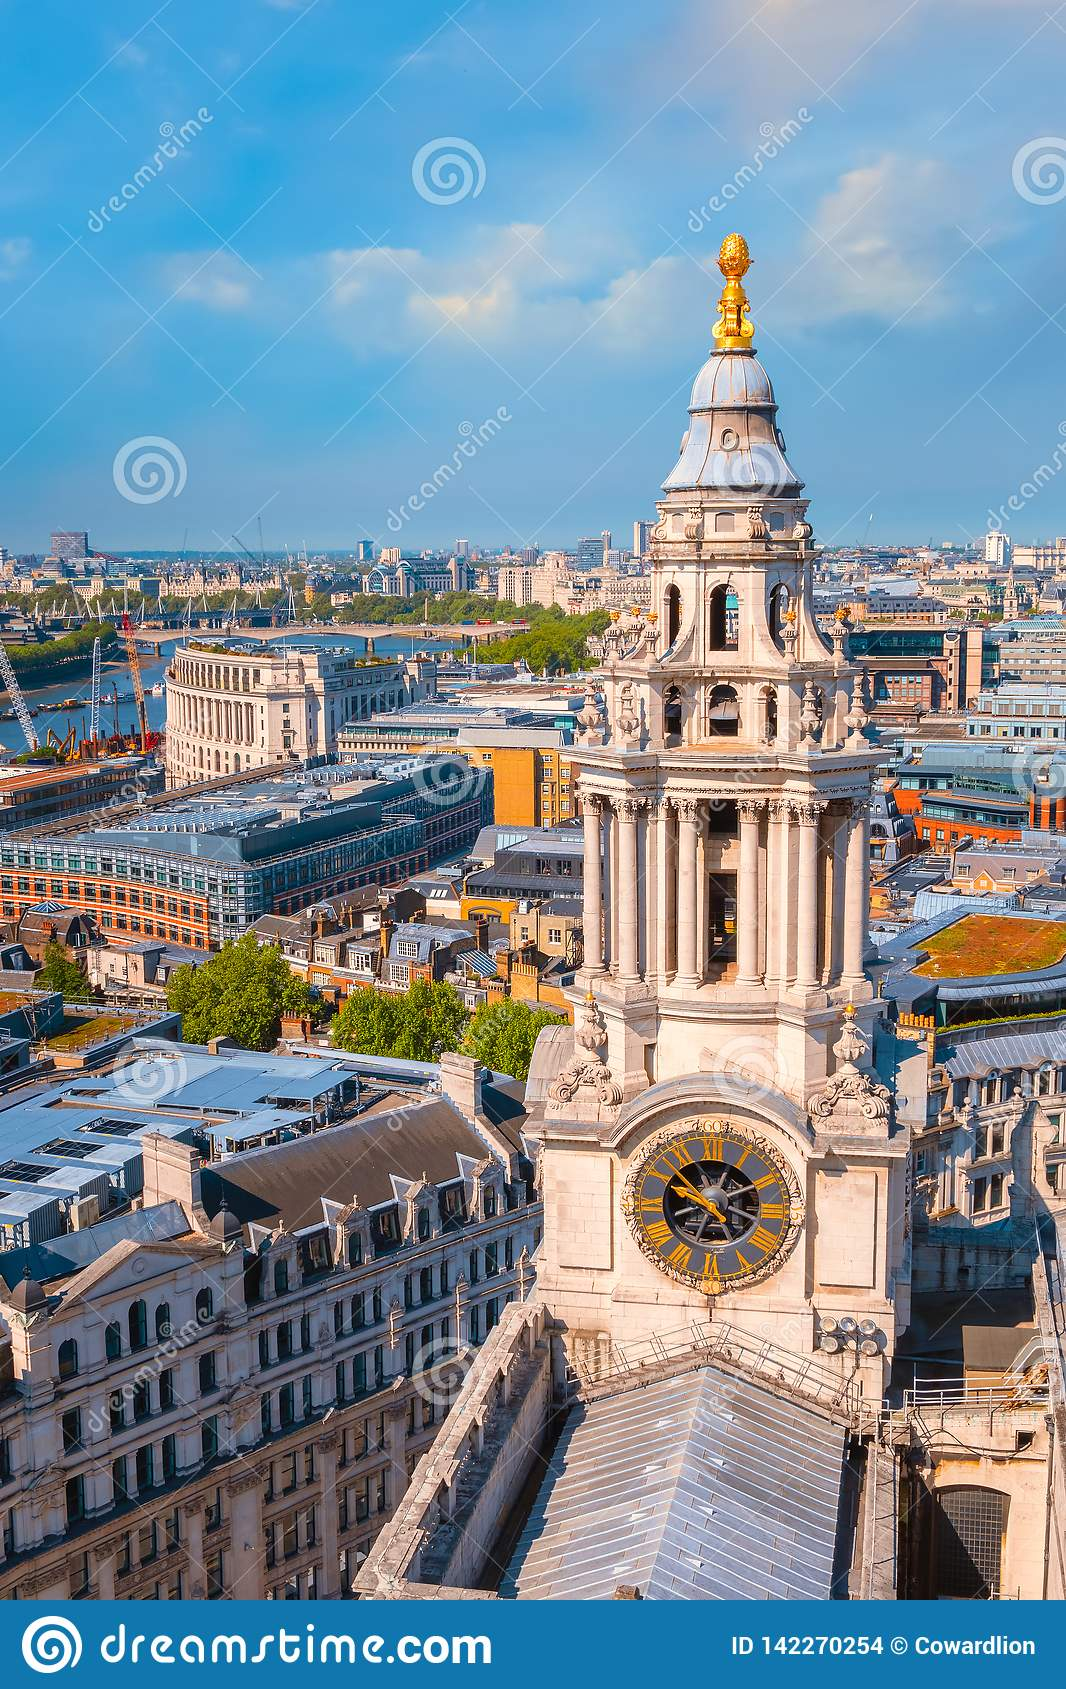 View Of London Cityscape From The Stone Gallery Of St Paul S Cathedral Stock Photo Image Of London Architecture 142270254